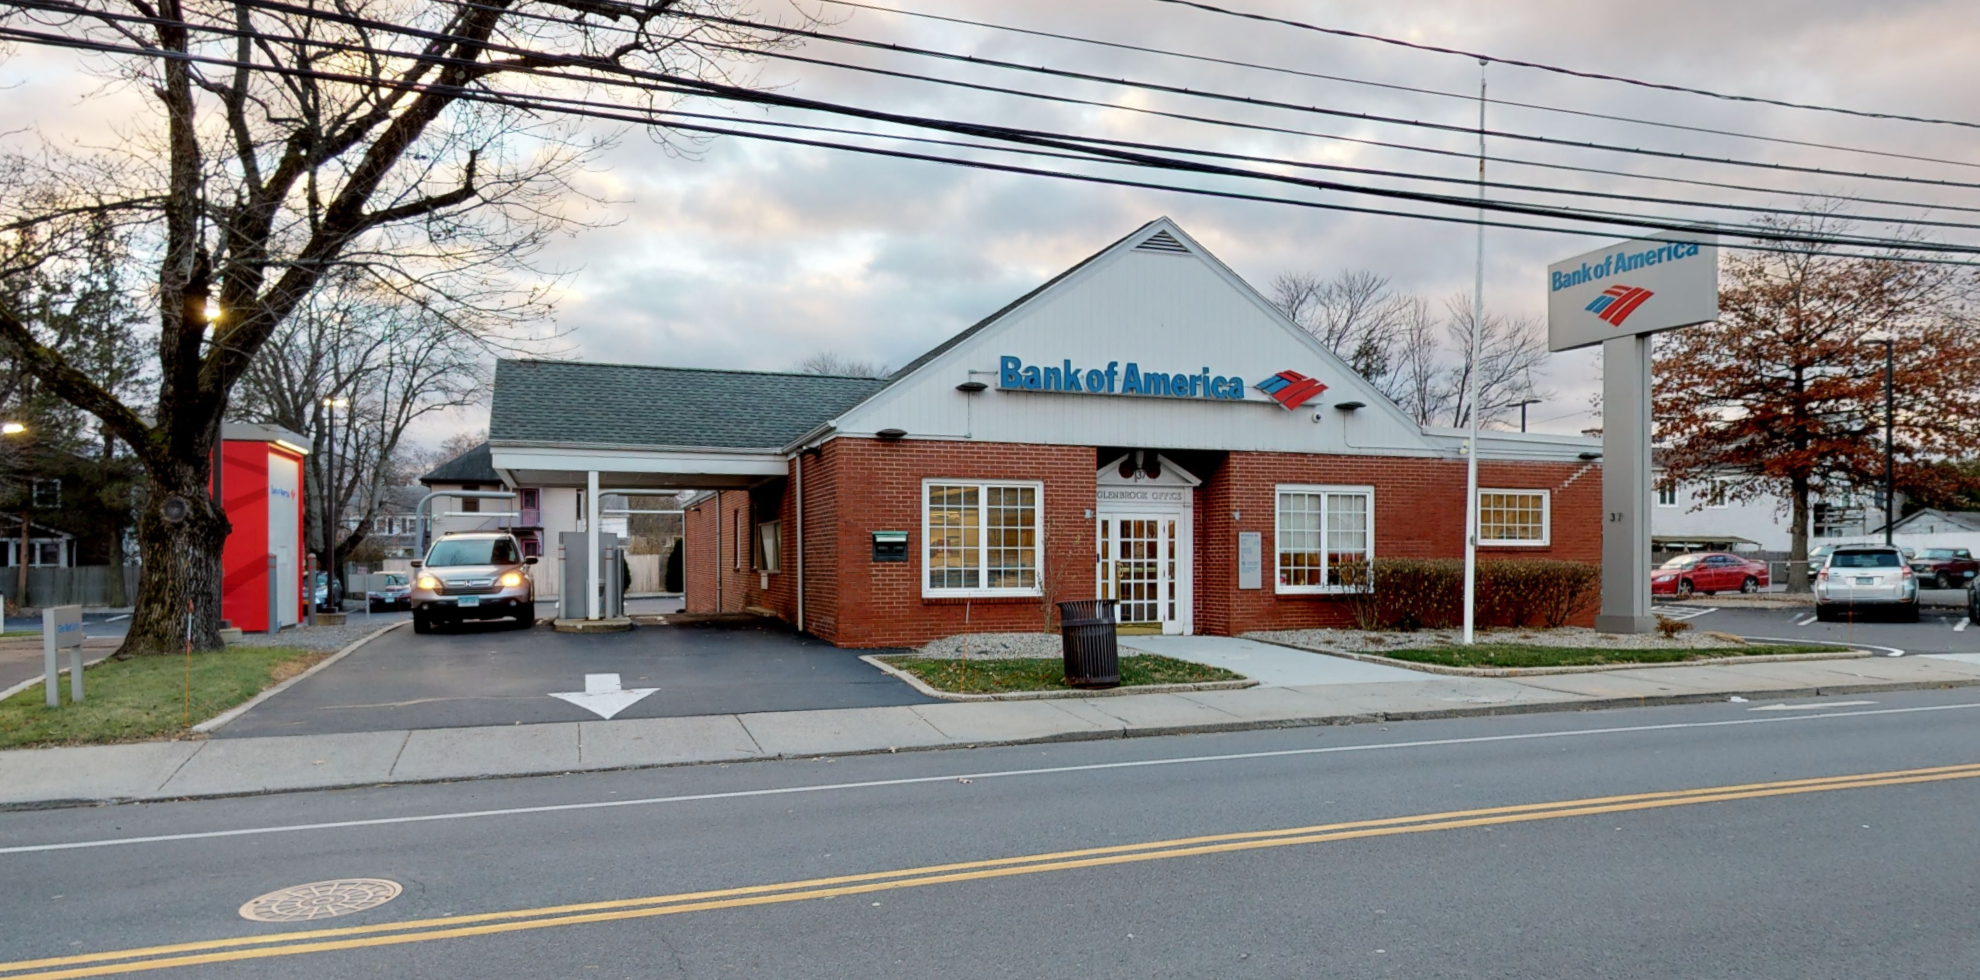 Bank of America financial center with drive-thru ATM   37 Church St, Stamford, CT 06906